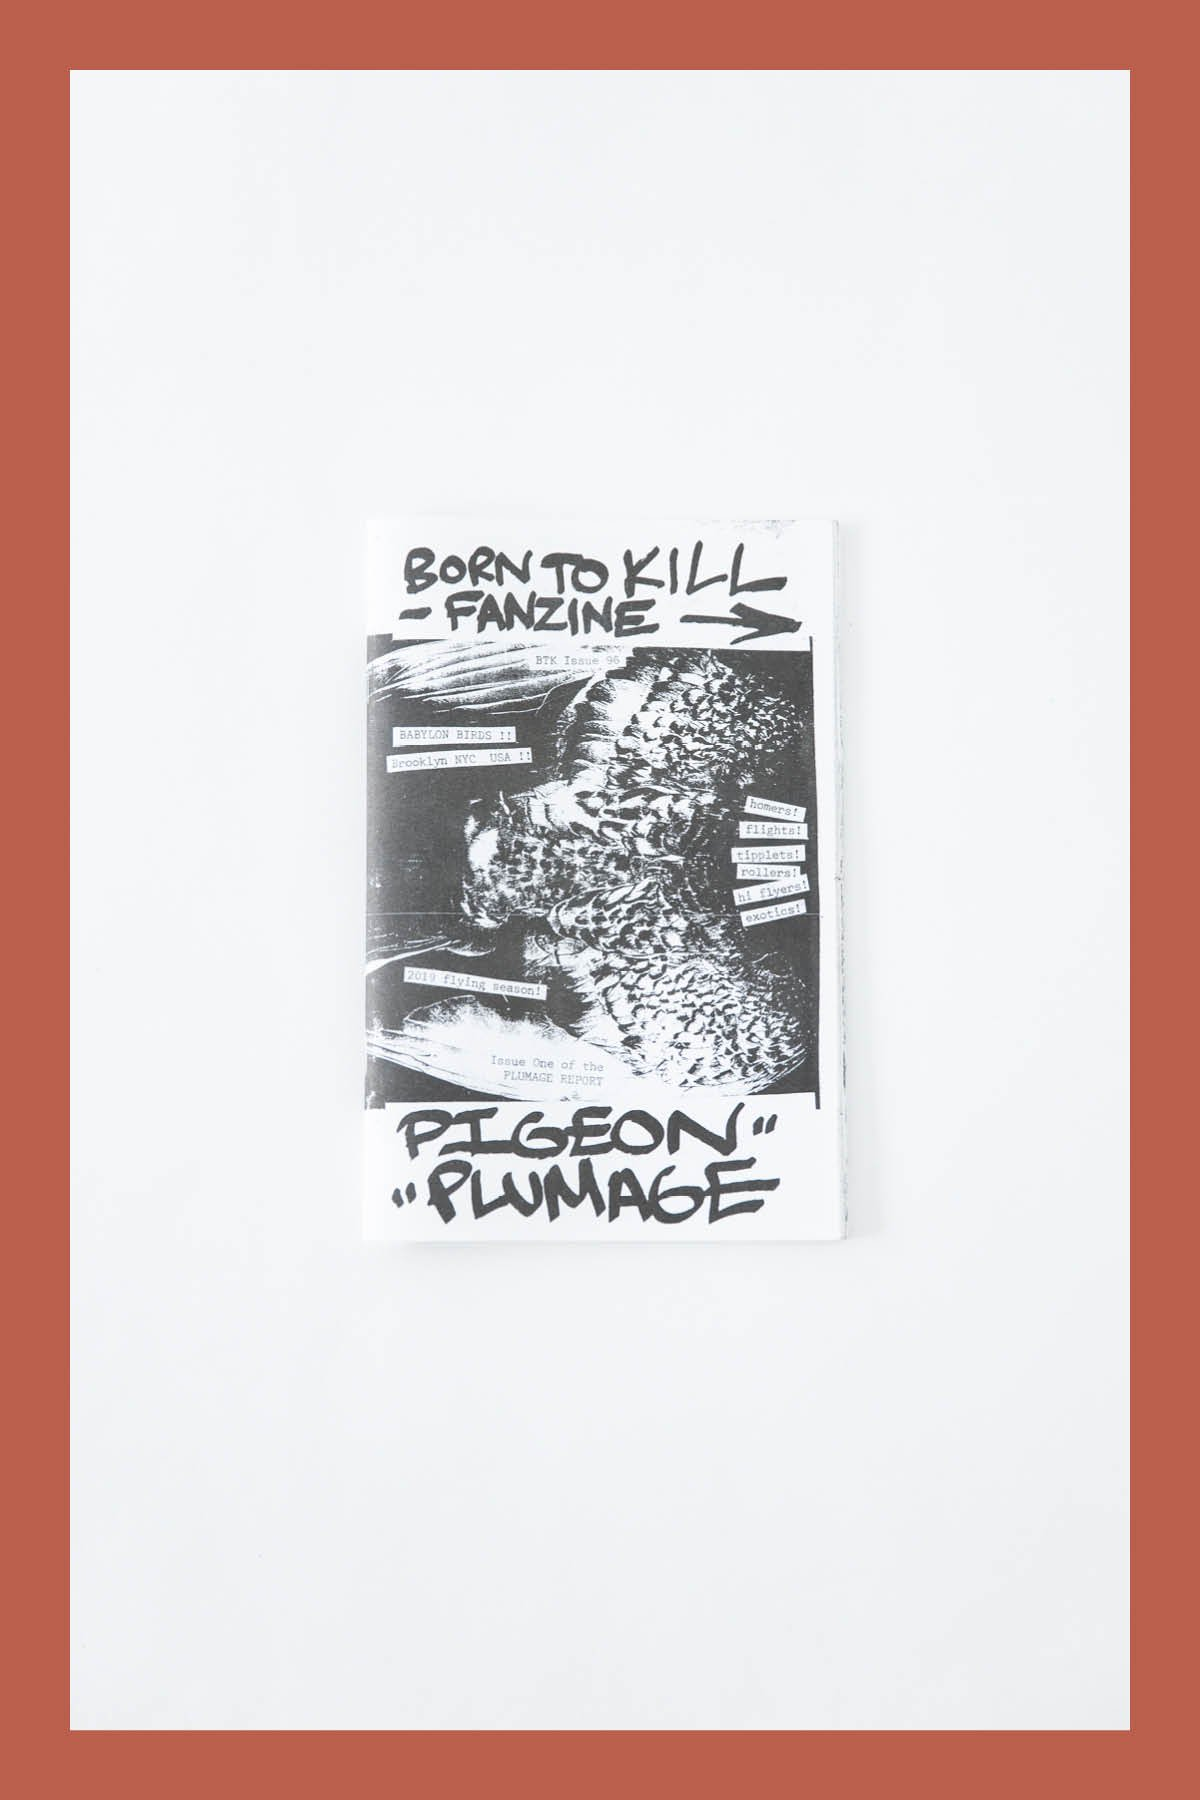 Pat McCarthy / BORN TO KILL ZINE #1